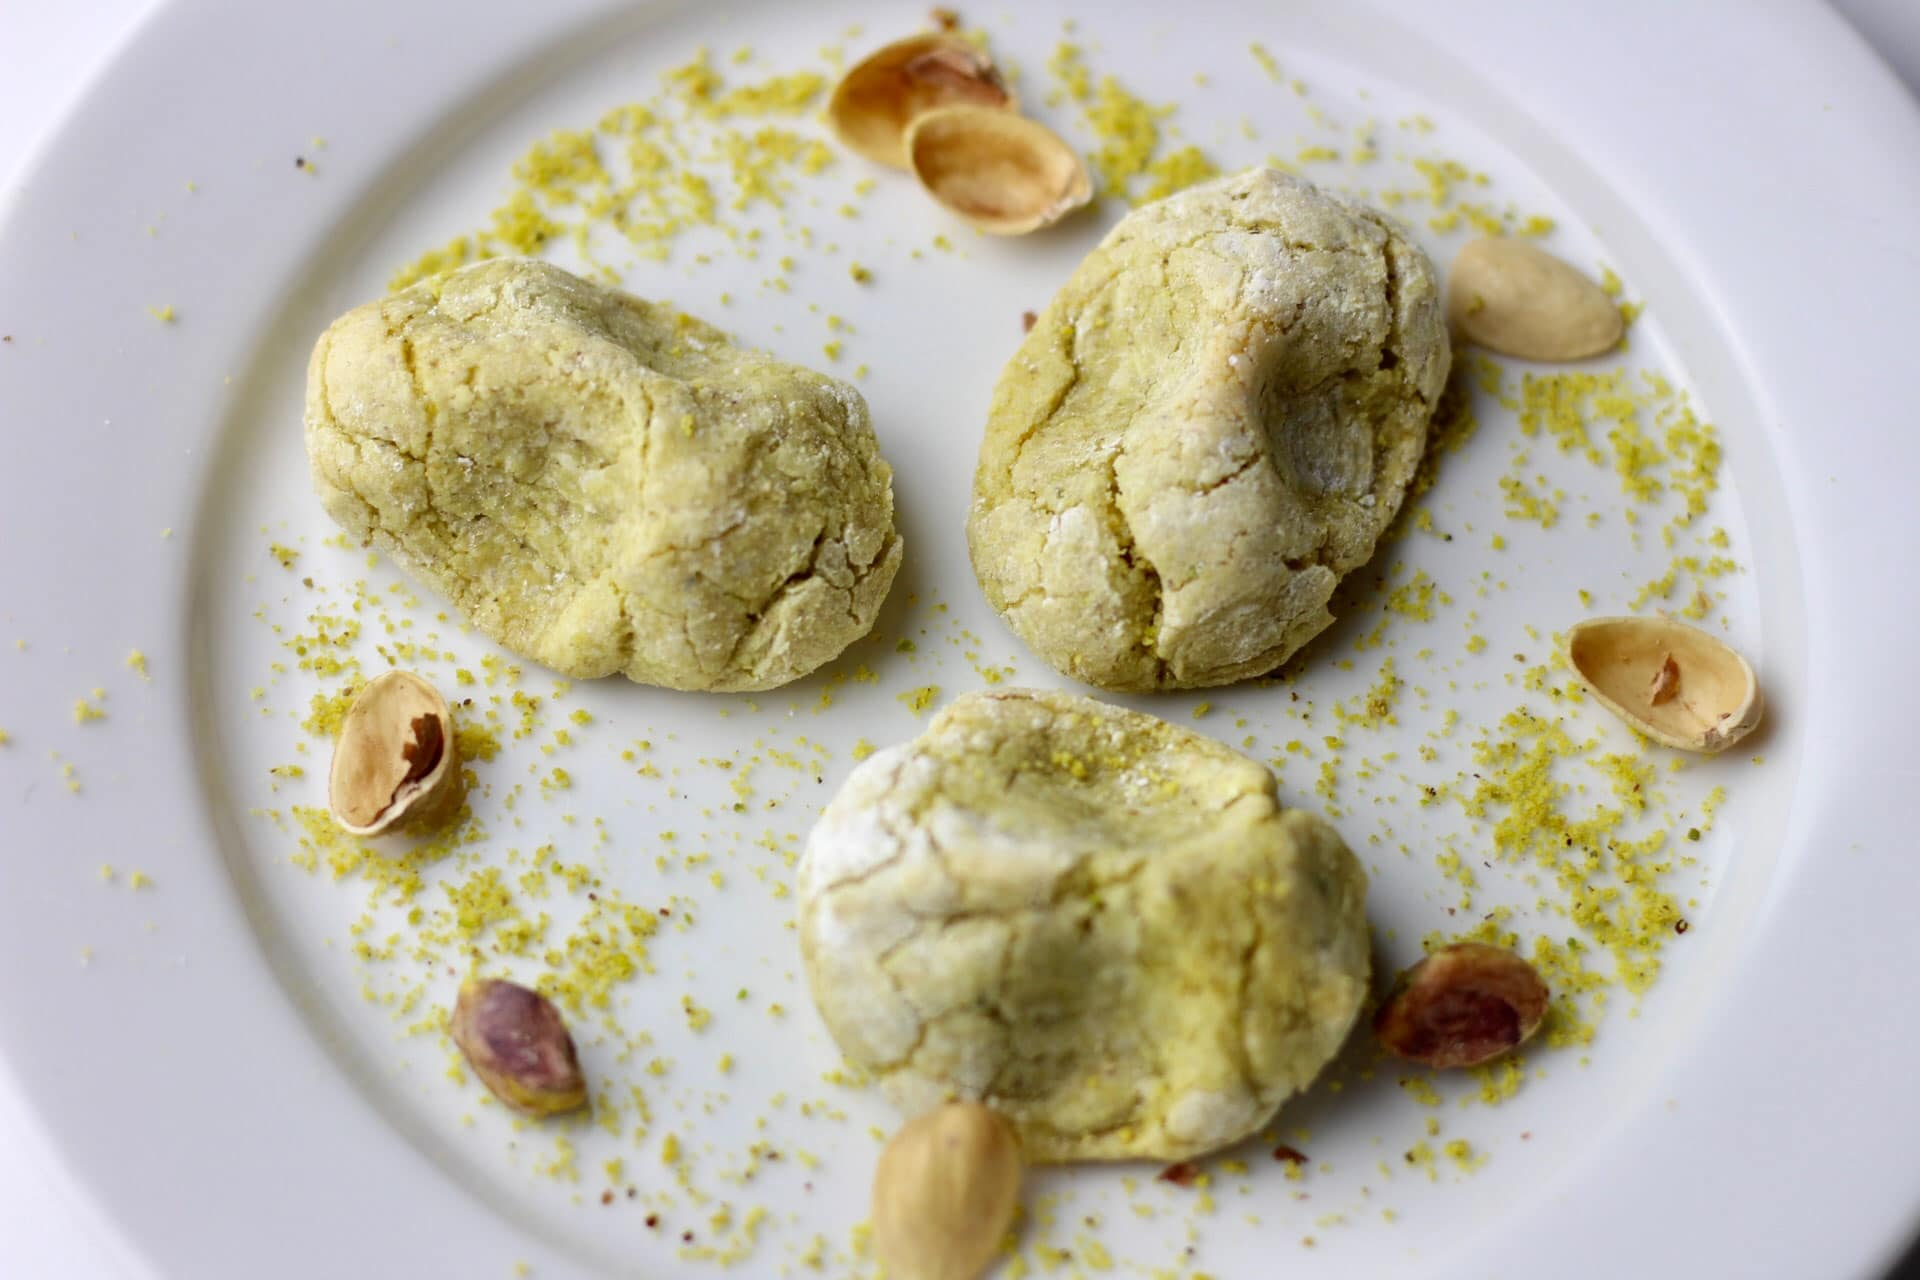 Three pistachio cookies served on a plate with pistachio shells for decoration.